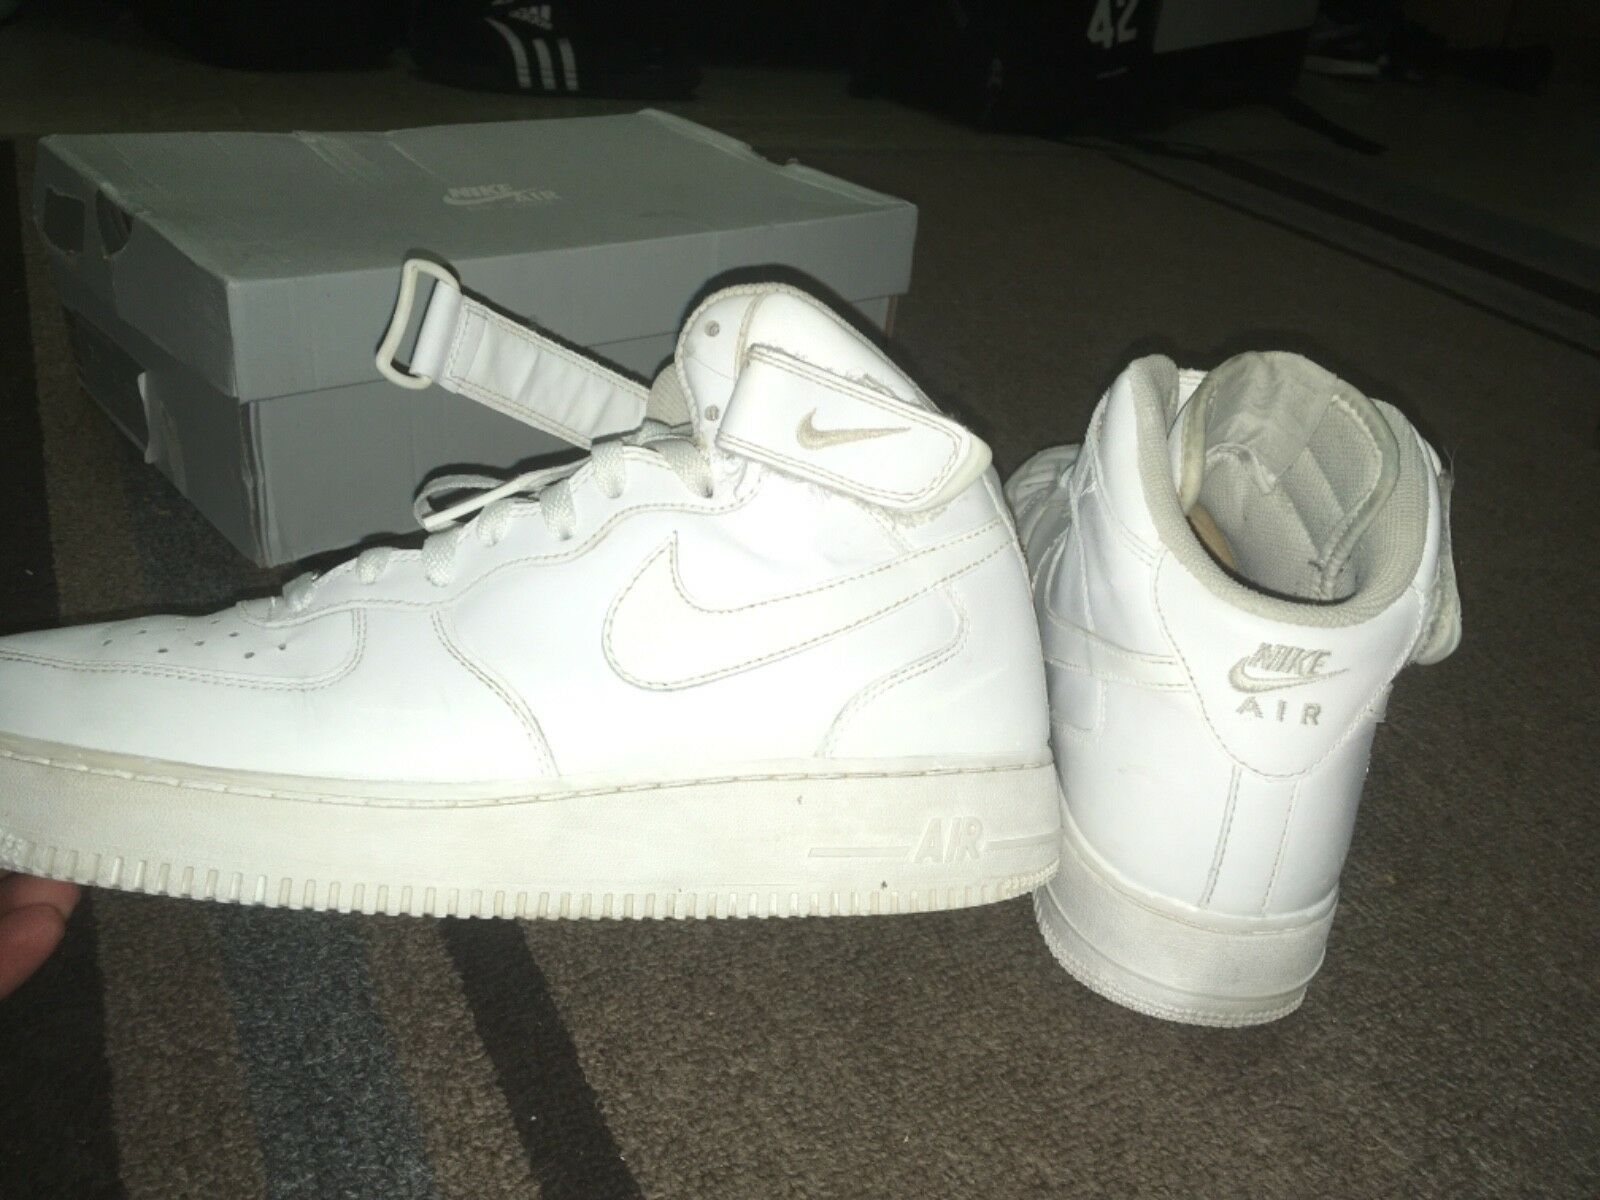 Nike Air Force 1 All White Men's Size 9